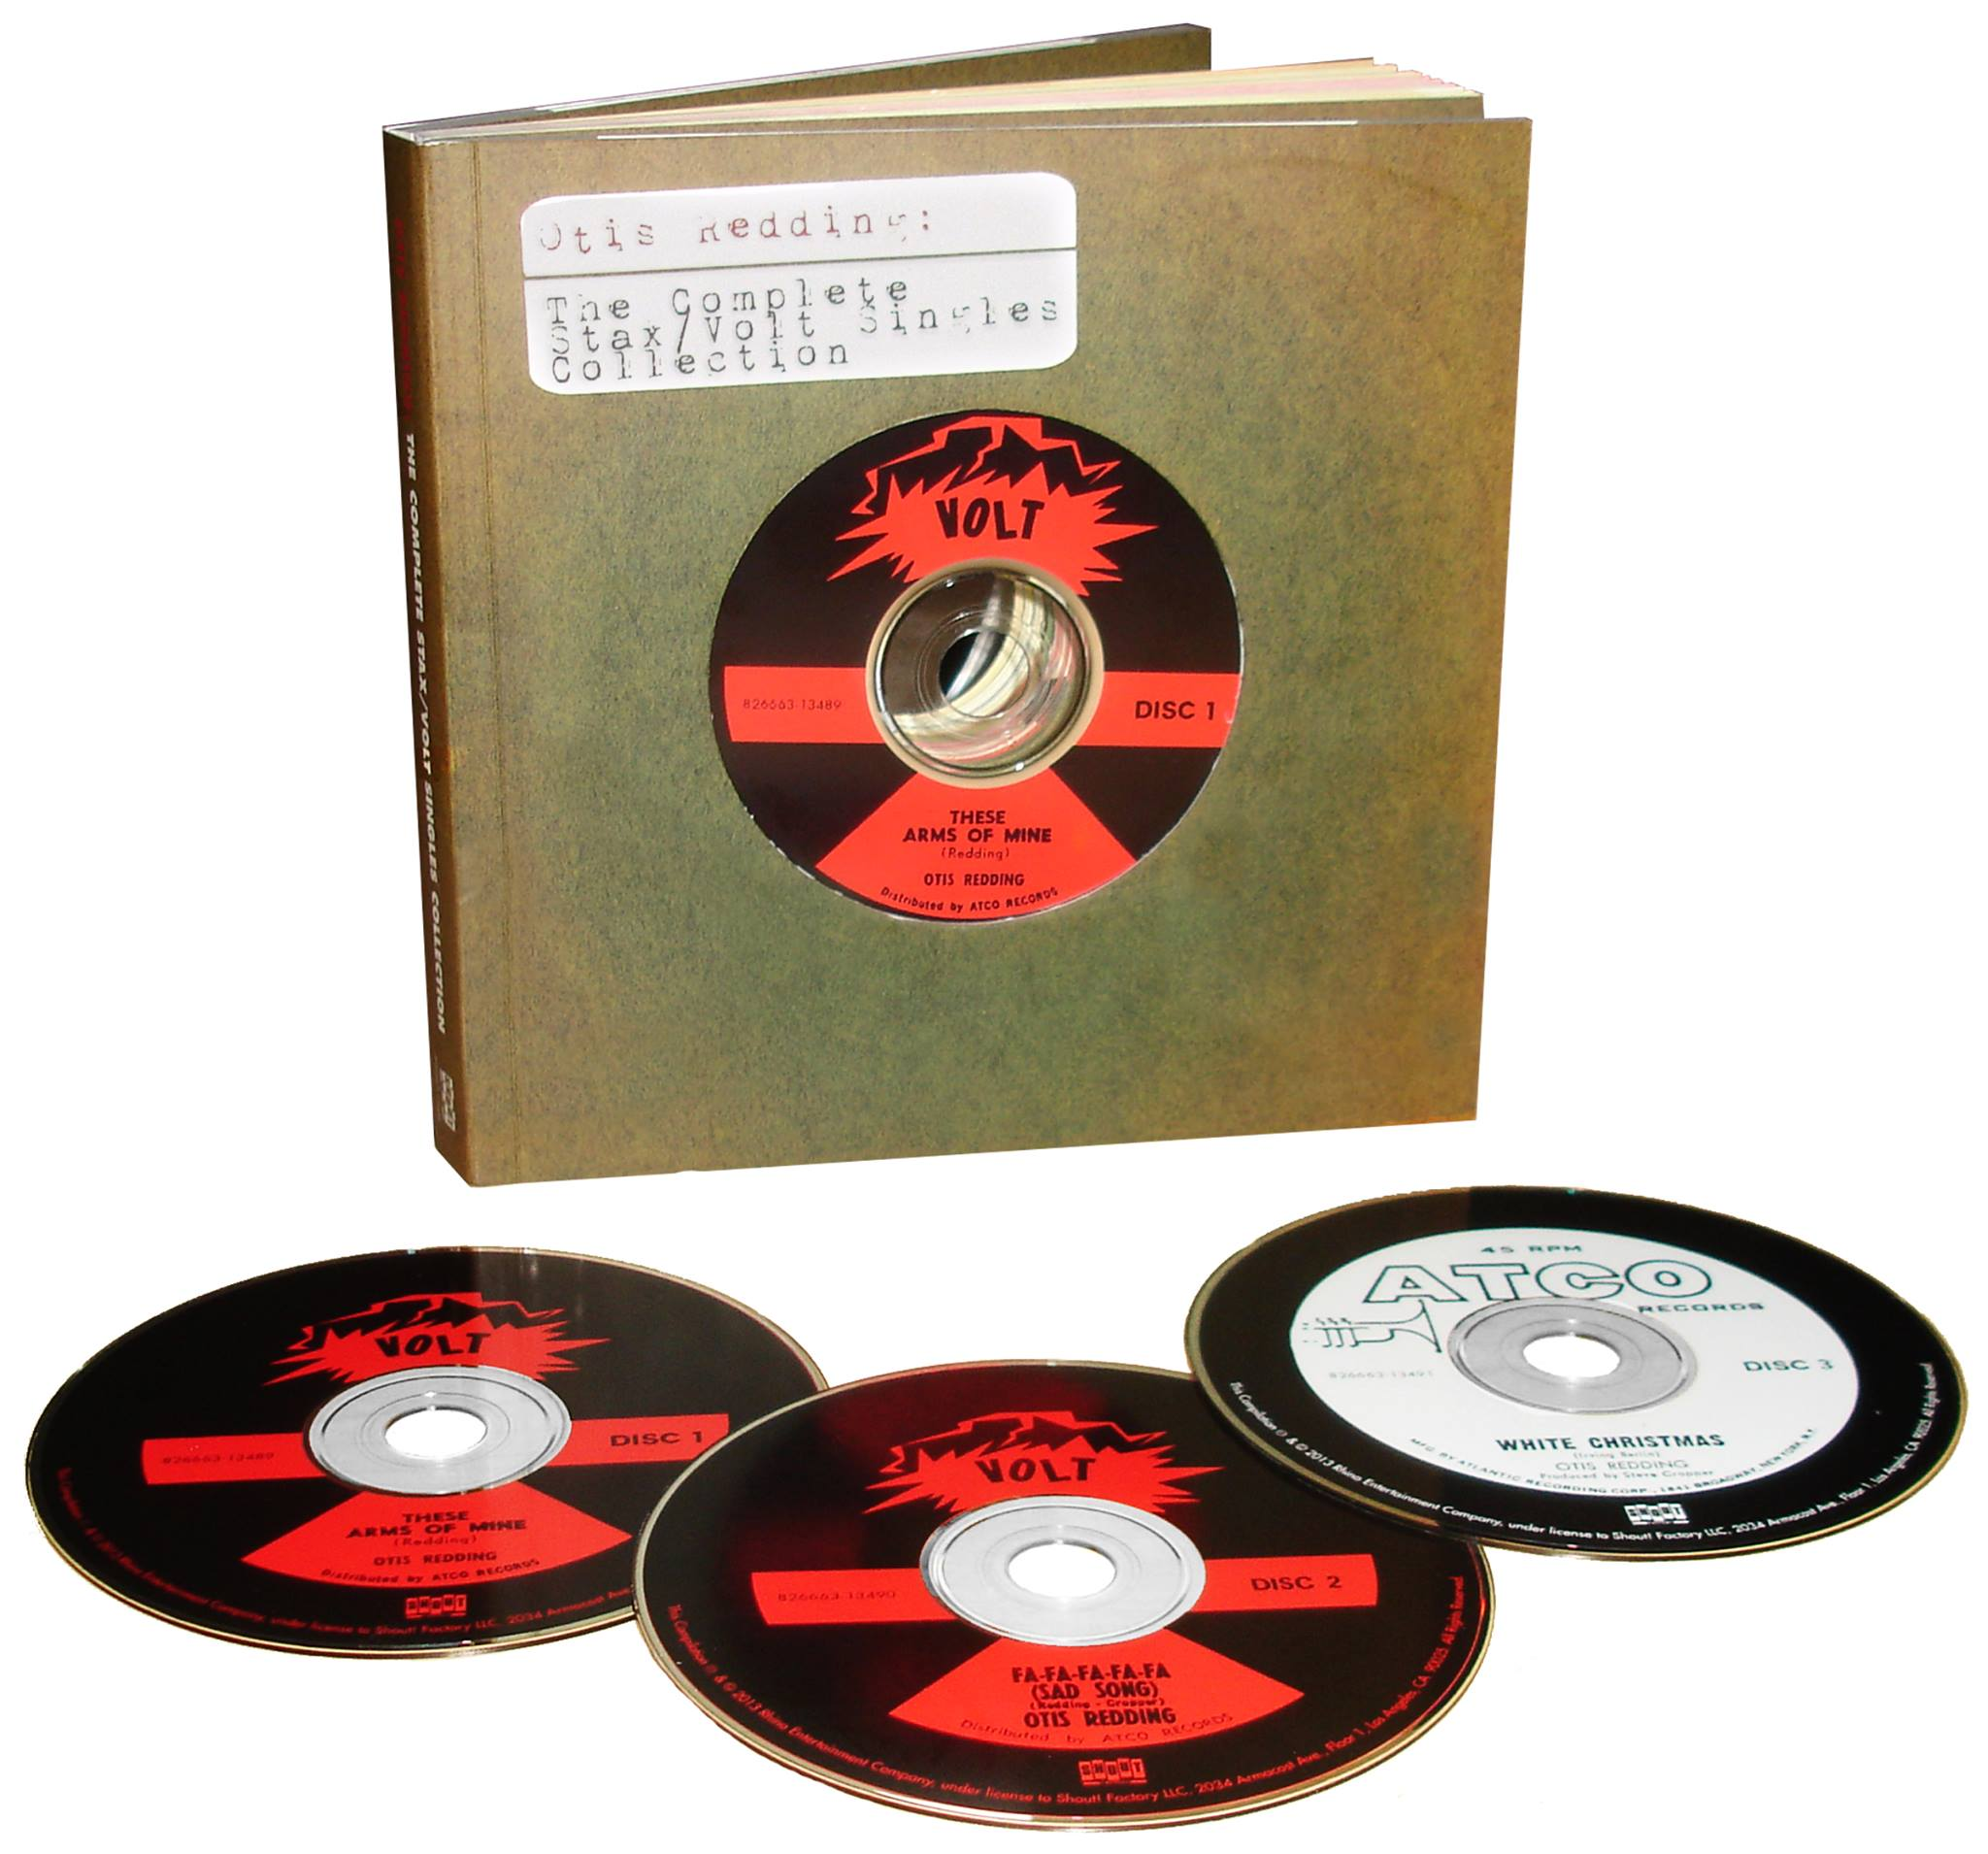 Otis redding: the complete stax/volt singles collection